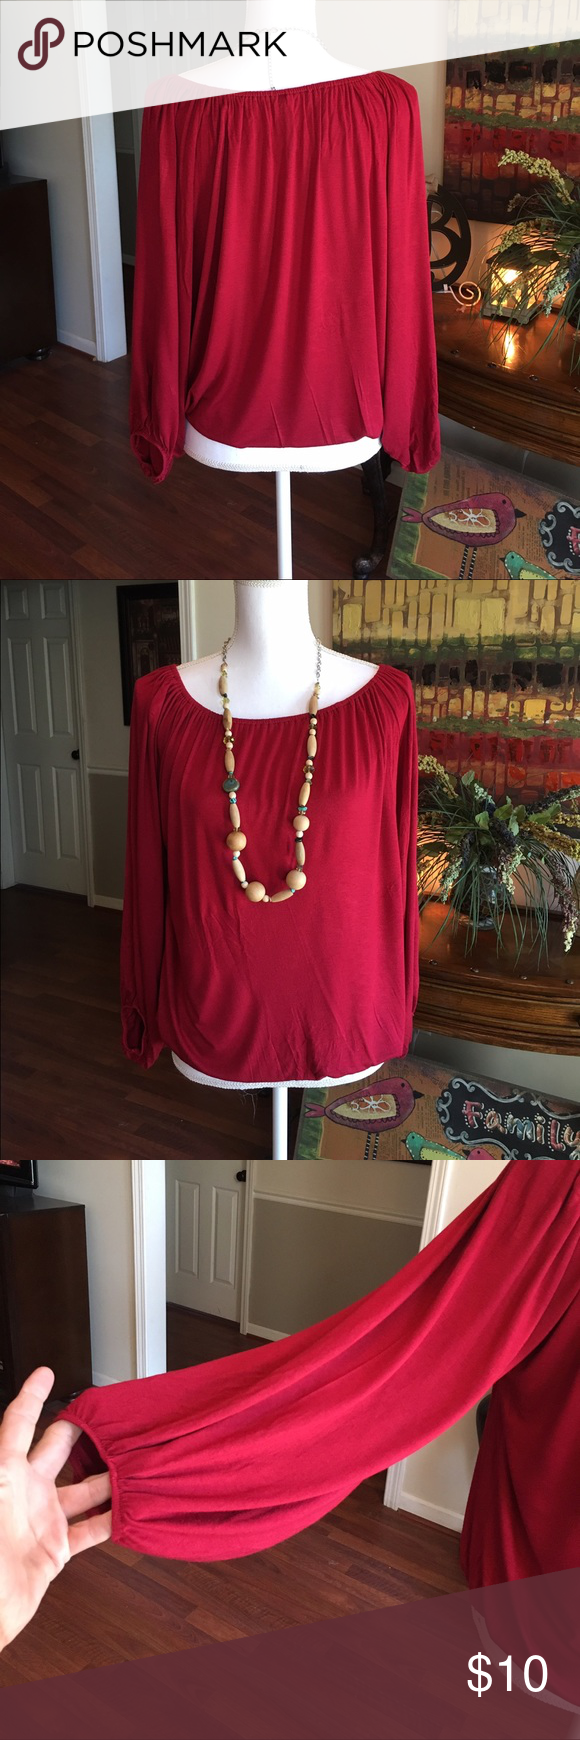 Emma Rose top Emma Rose burgundy top. Elastic at bottom of shirt and on the end of the sleeves.  So easy to wear. No tucking.  Looks good with jeans!  Thanks for looking in my closet!💋 Emma Rose Tops Blouses